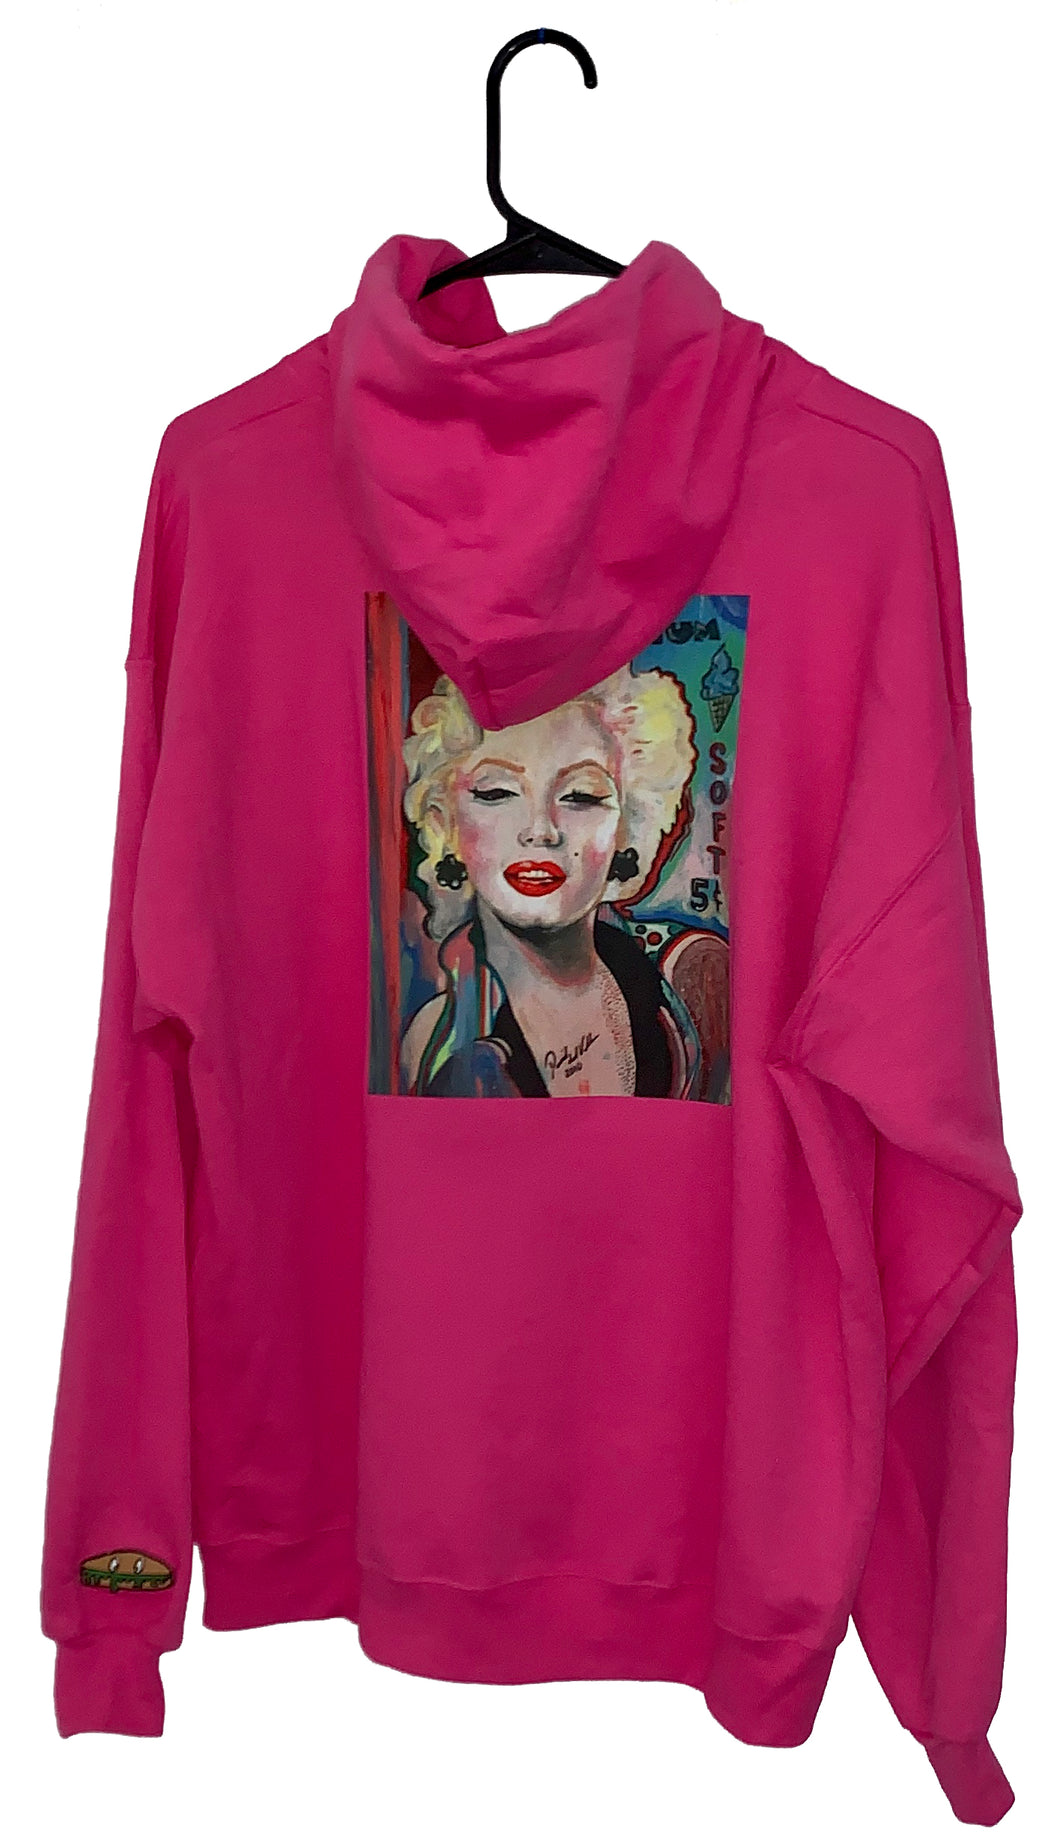 Kandykorn X Slimyburger -Hot Pink or Purple Haze Hoodie W/ Marilyn Monroe on backside, Ribbed Cuffs & Waist Band Sizes (S-XL) 1950s Fashion